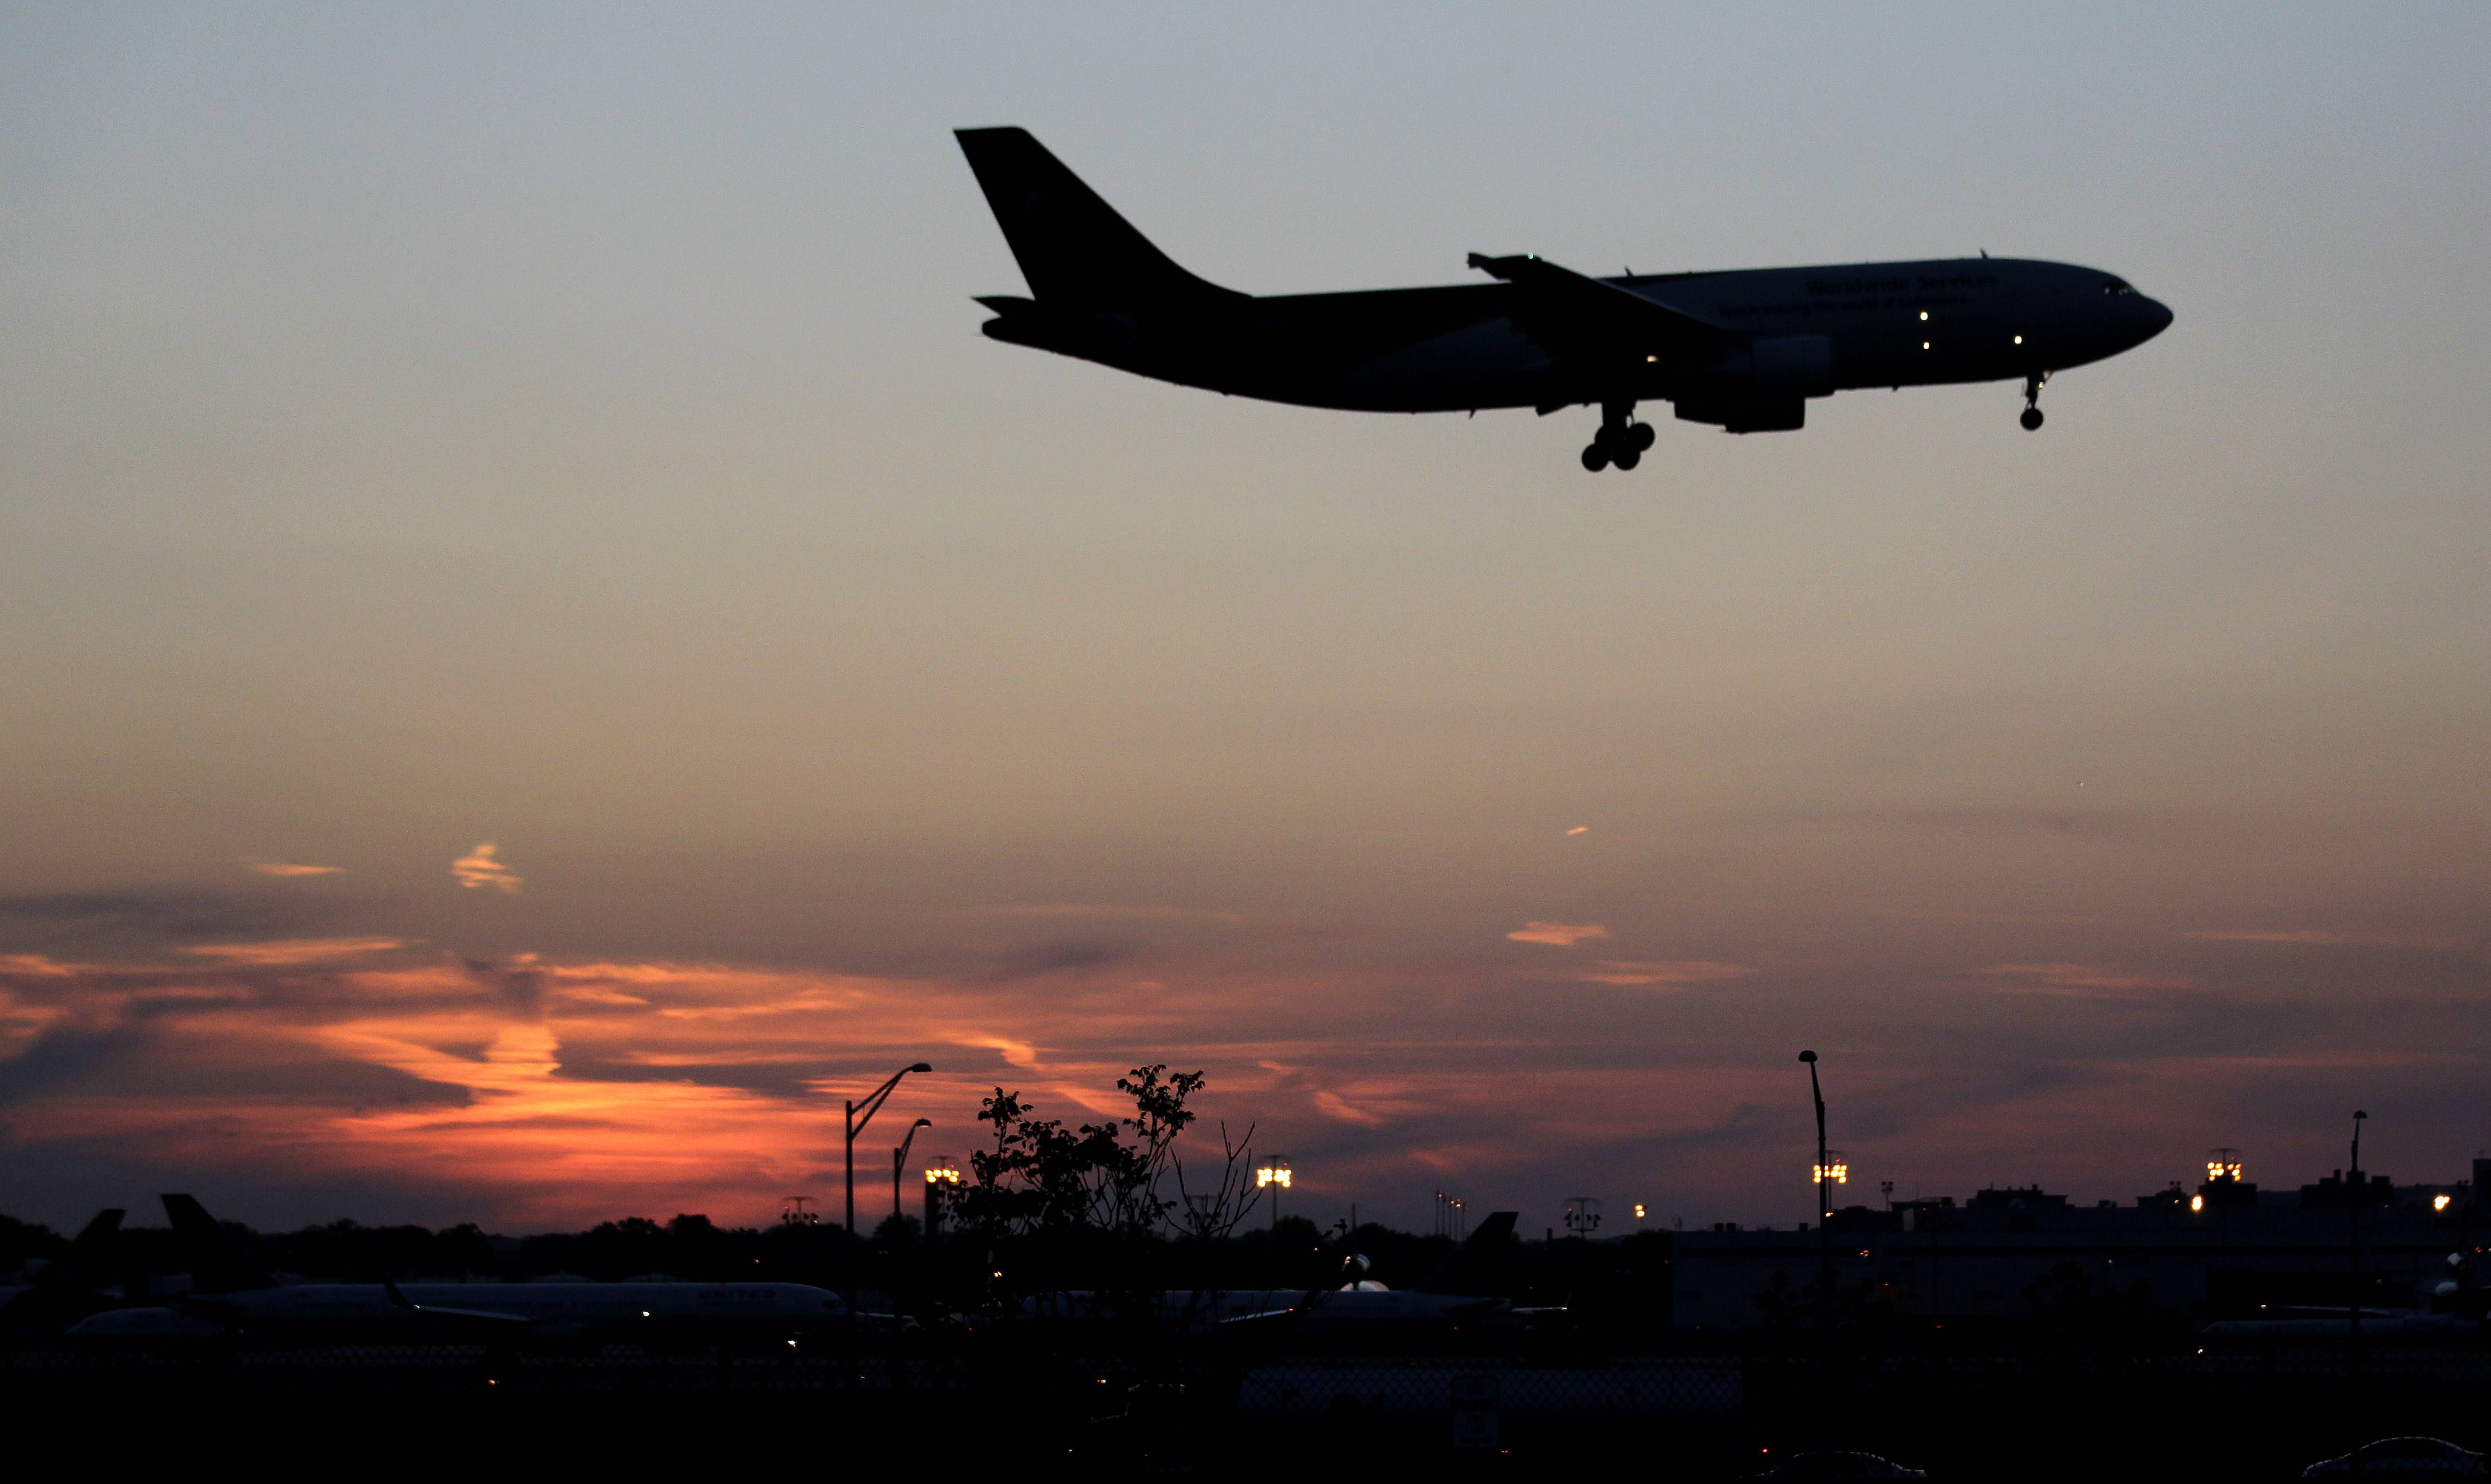 More travelers are flying than ever before, creating a daunting challenge for airlines: keep passengers safe in an ever more crowded airspace.